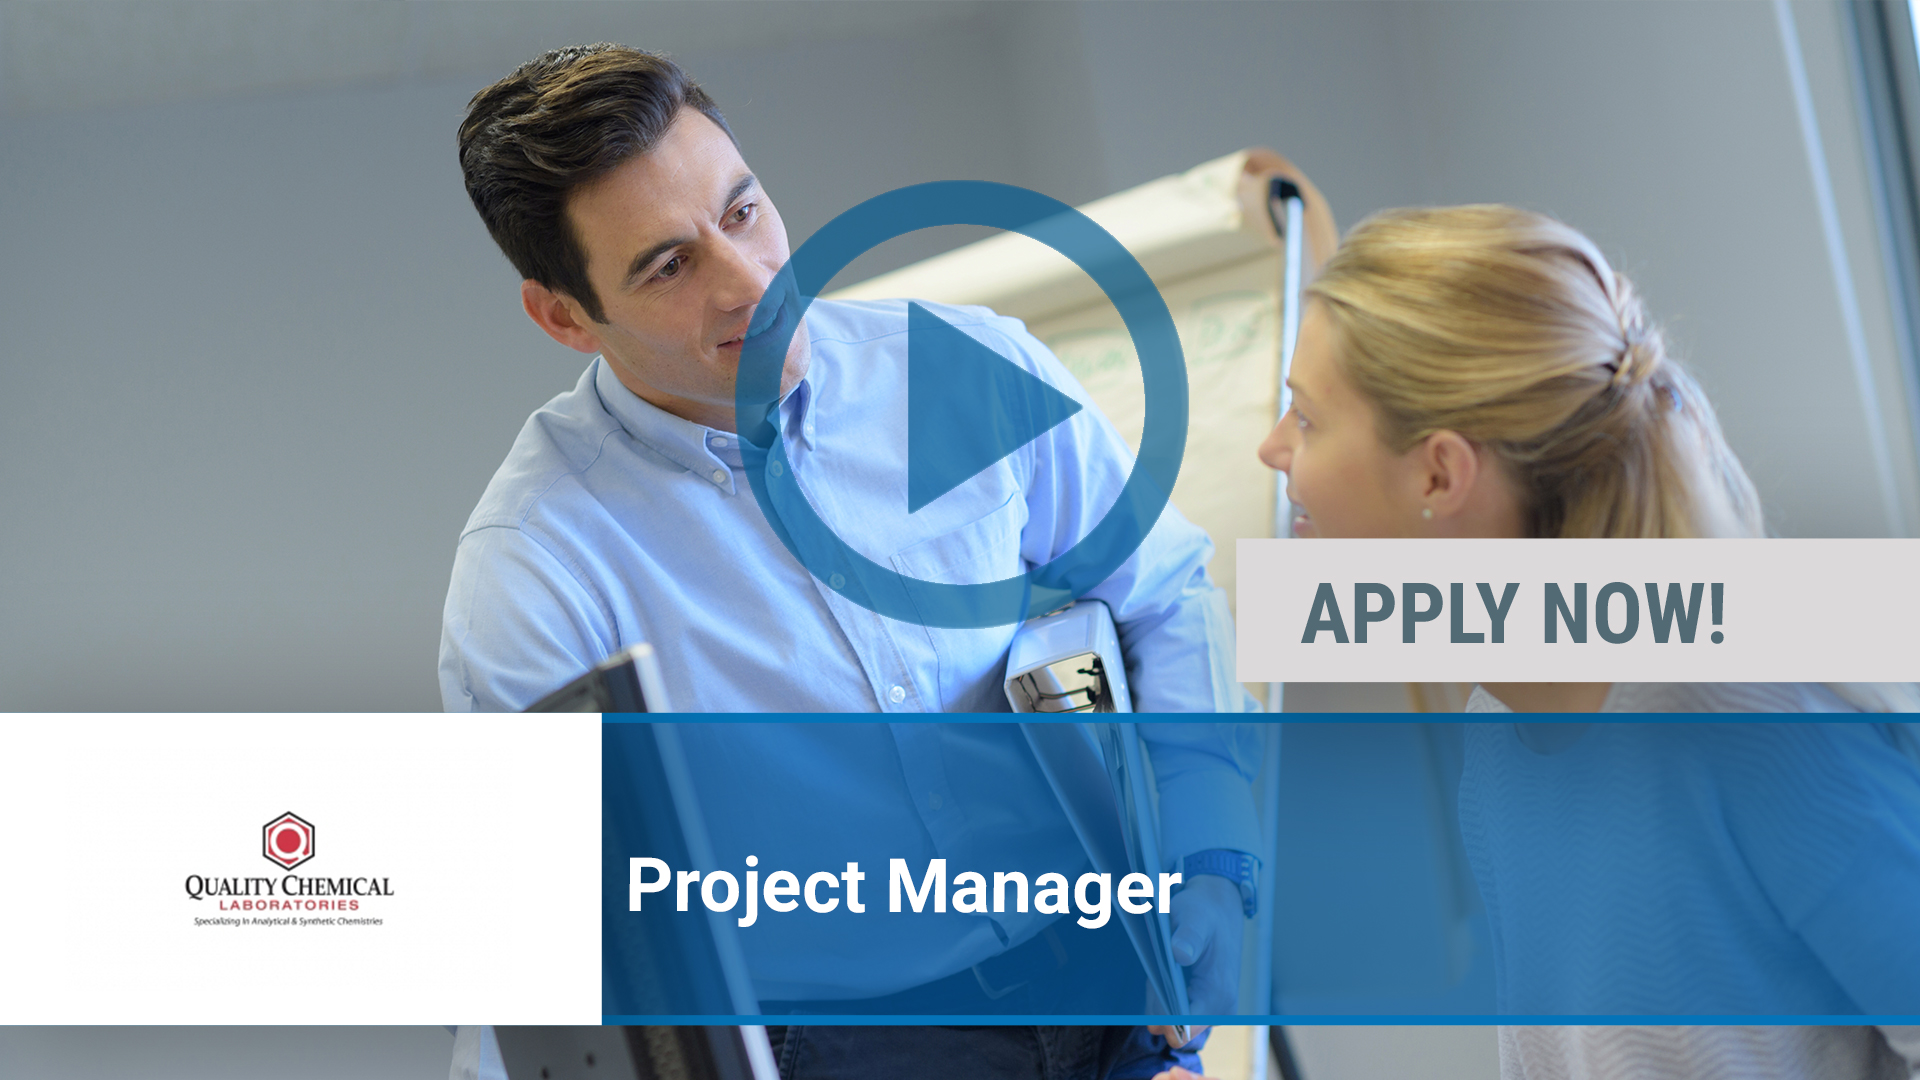 Watch our careers video for available job opening Project Manager in Wilmington, NC